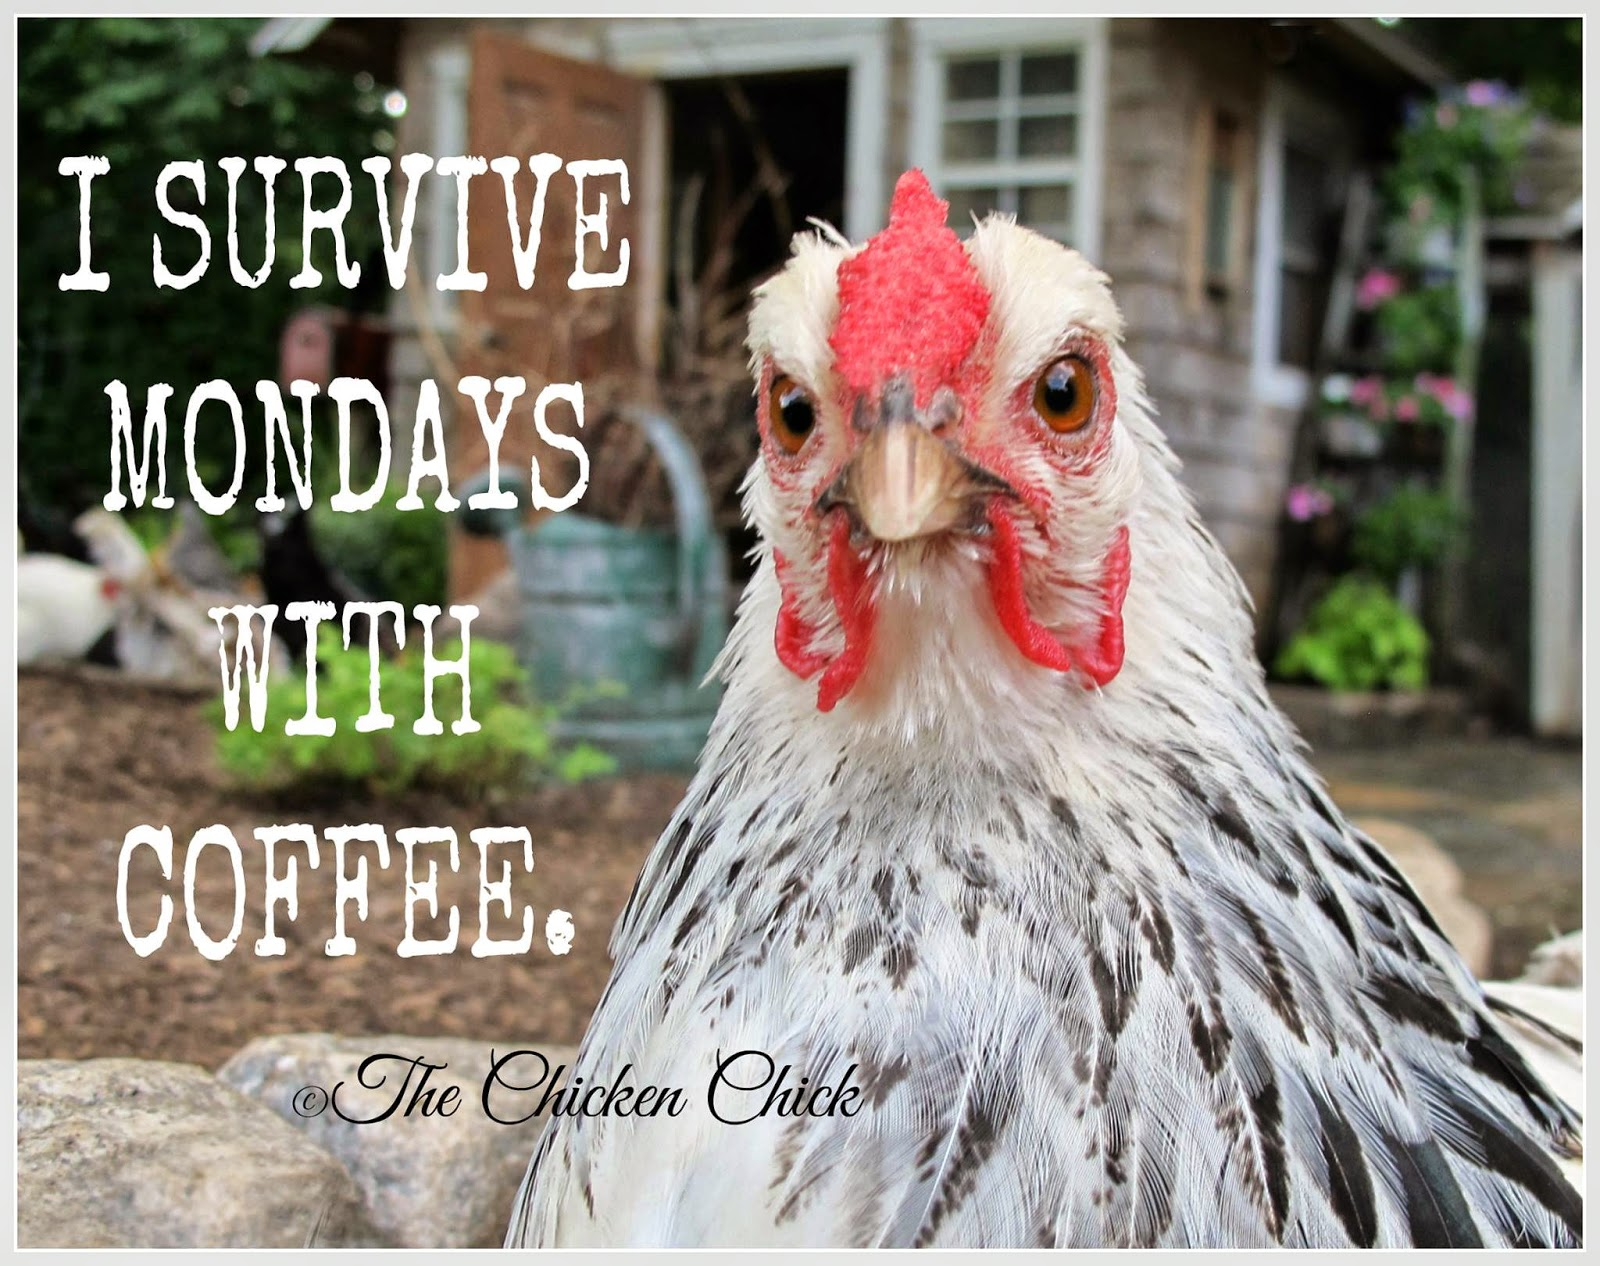 I survive Mondays with Coffee.